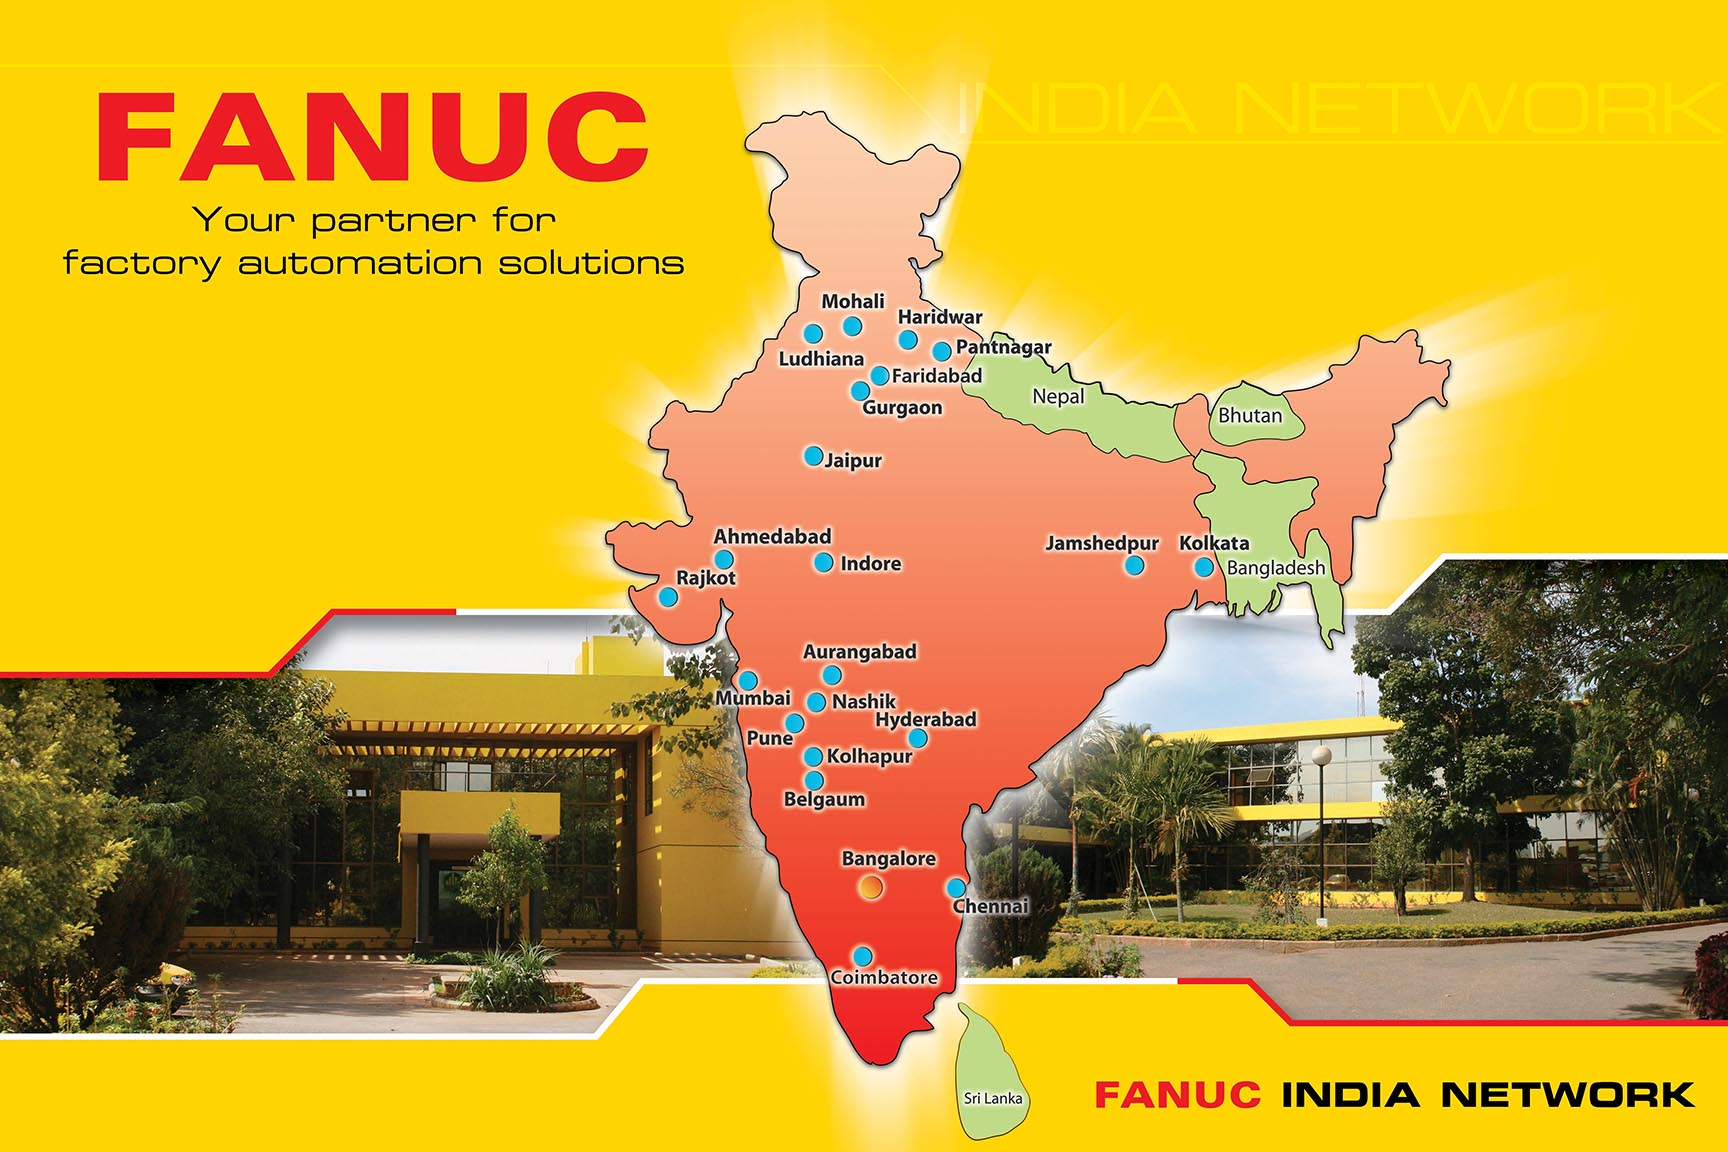 FANUC INDIA Nation Wide Network